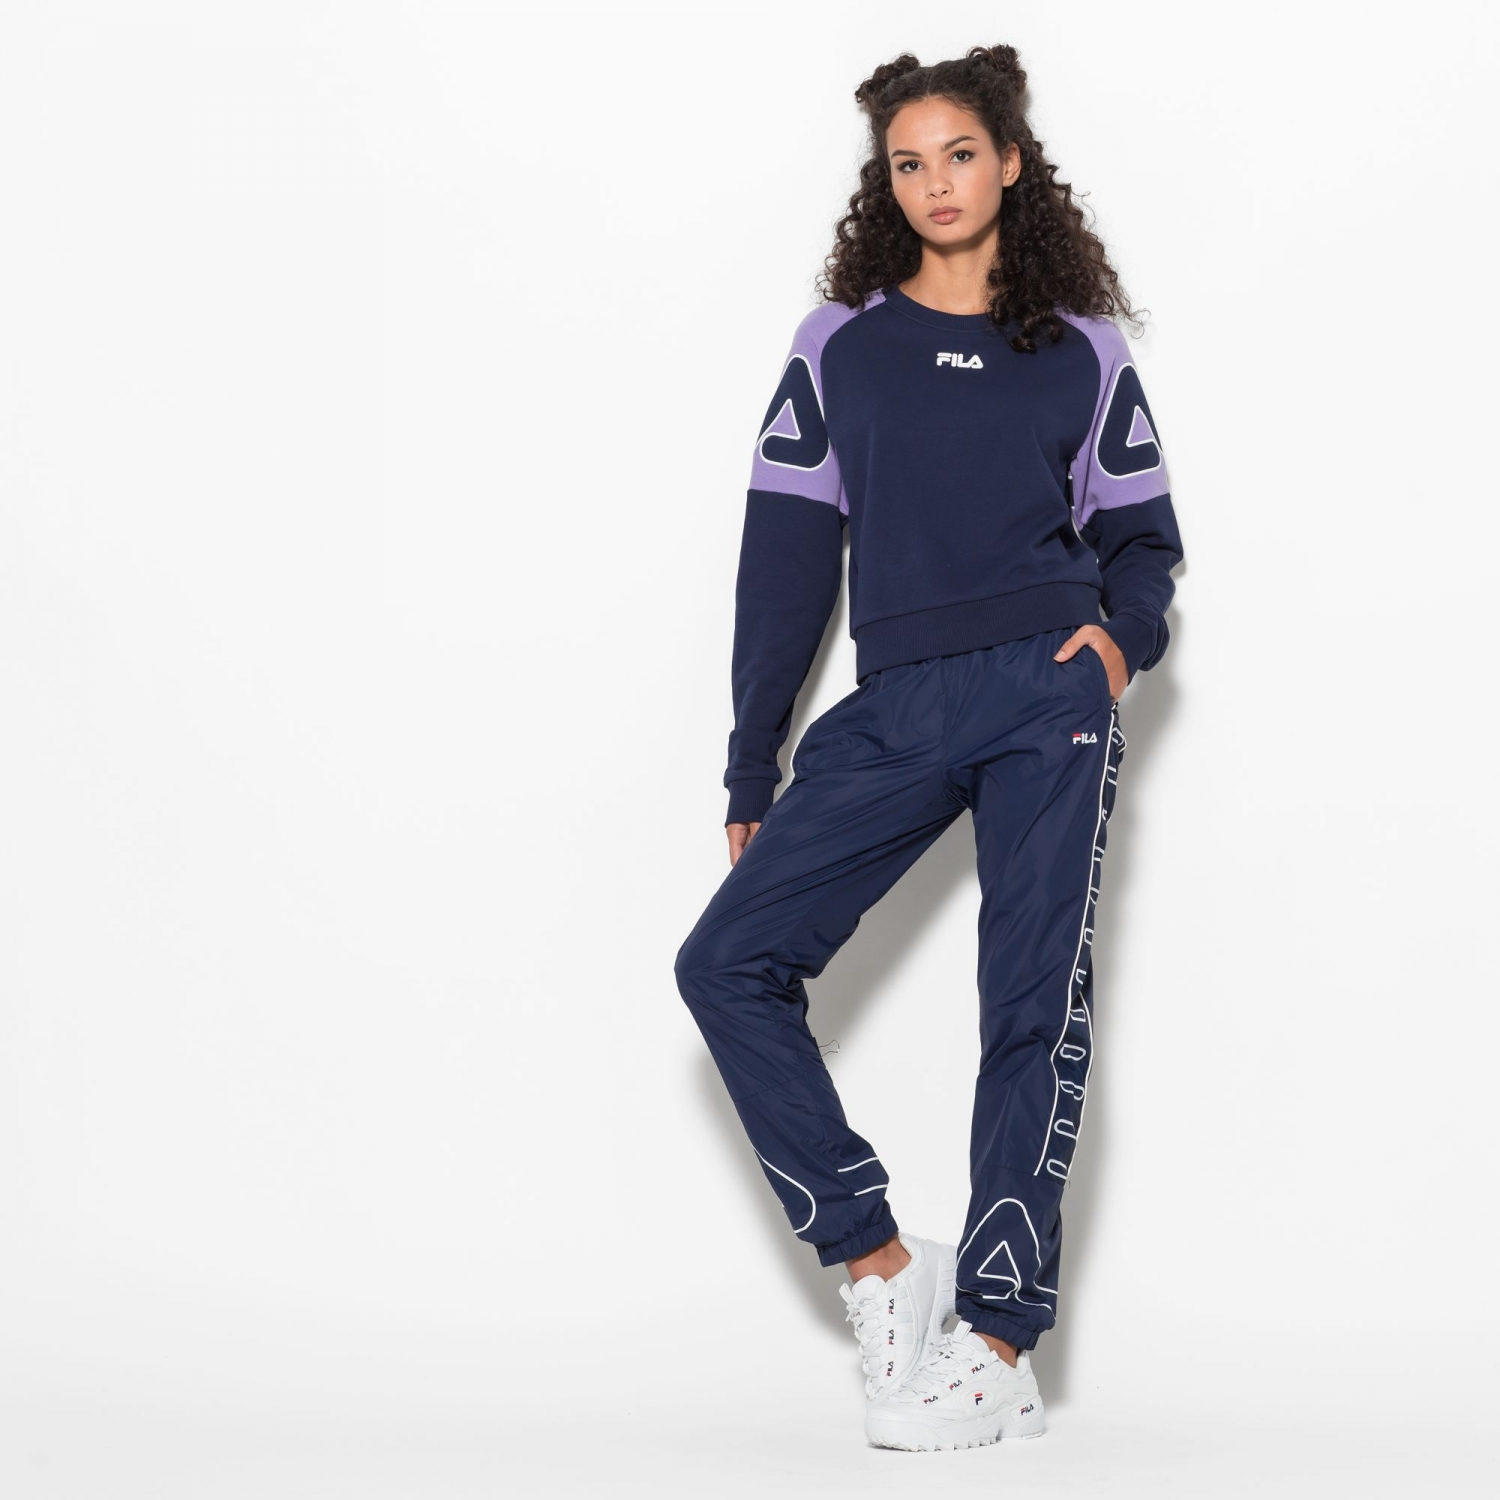 Fila Veronica Crew Sweat Bild 3